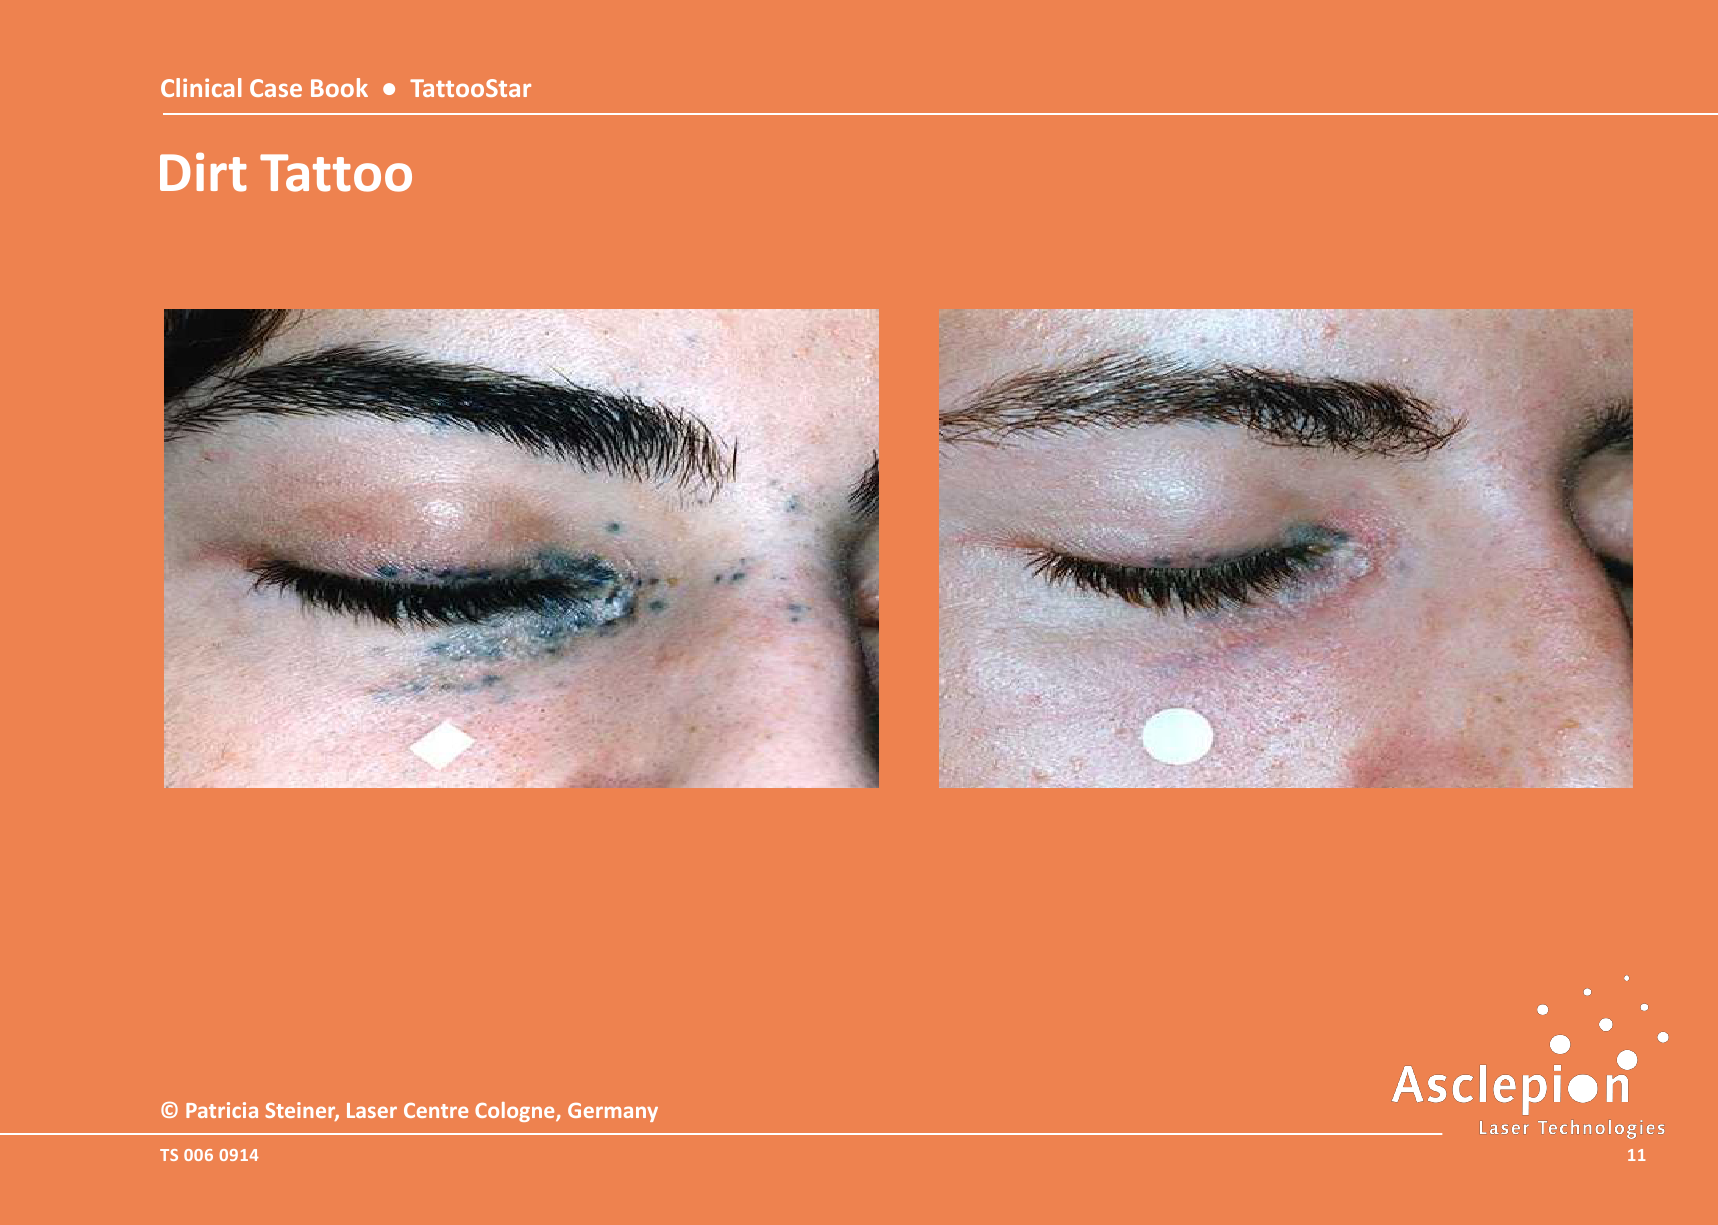 Clinical-Case-Book-2014-TattooStar_091411